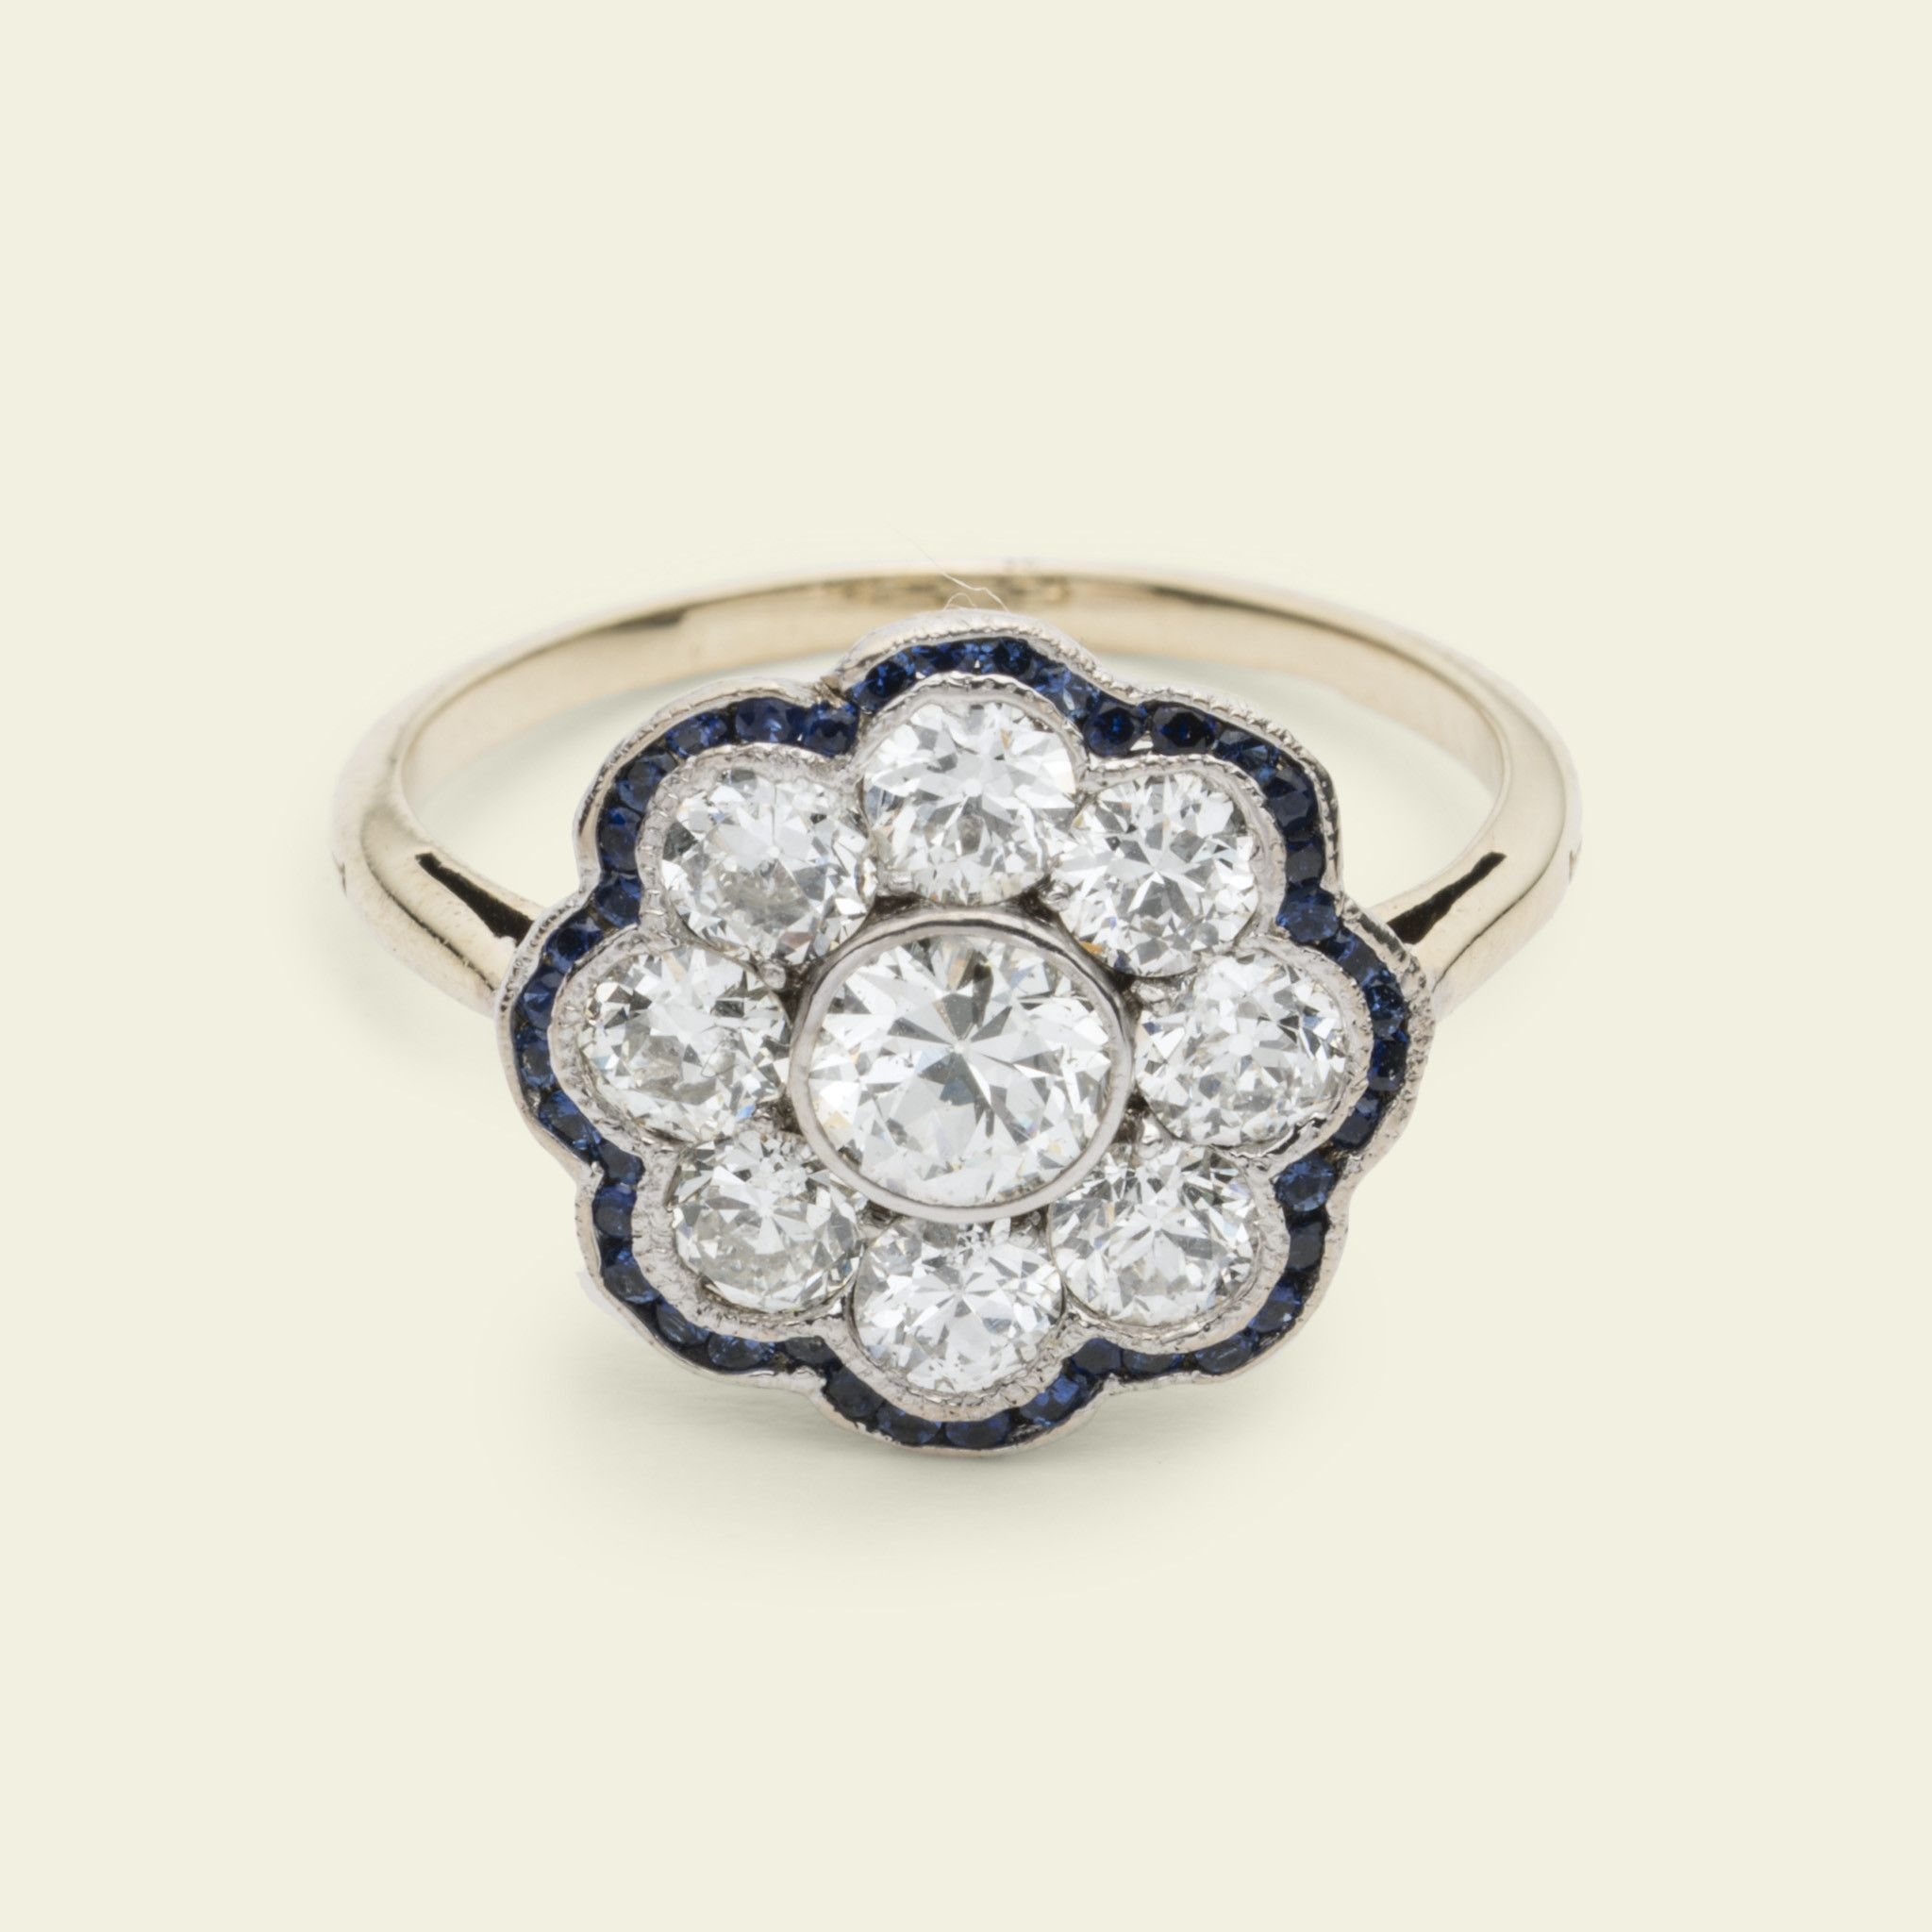 diamonds micropav faq pave micropave pav are blog micropavevintagering between engagement ring style vintage durable rings the french difference ritani more diamond and than settings